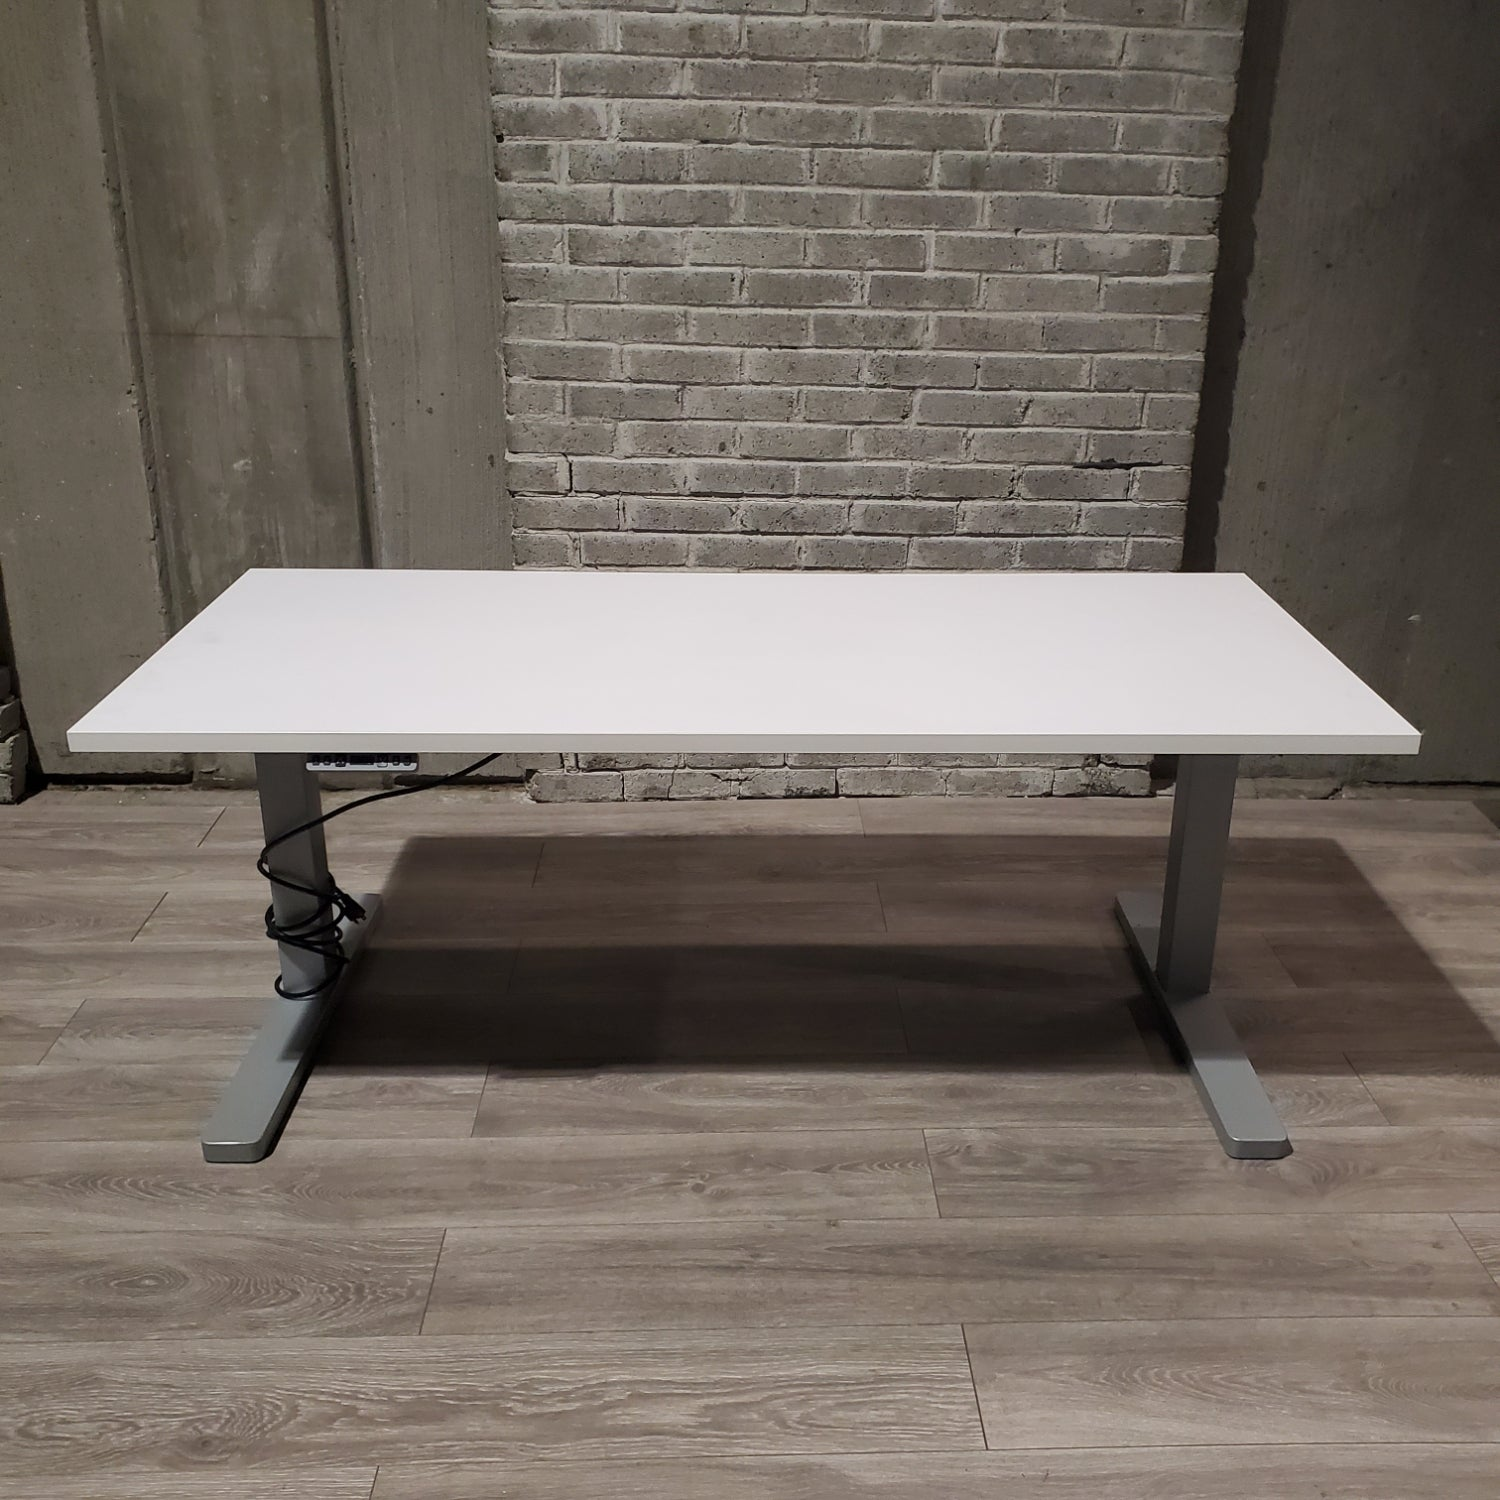 Pre-Owned - Used Electric Height Adjustable Desk - Duckys Office Furniture